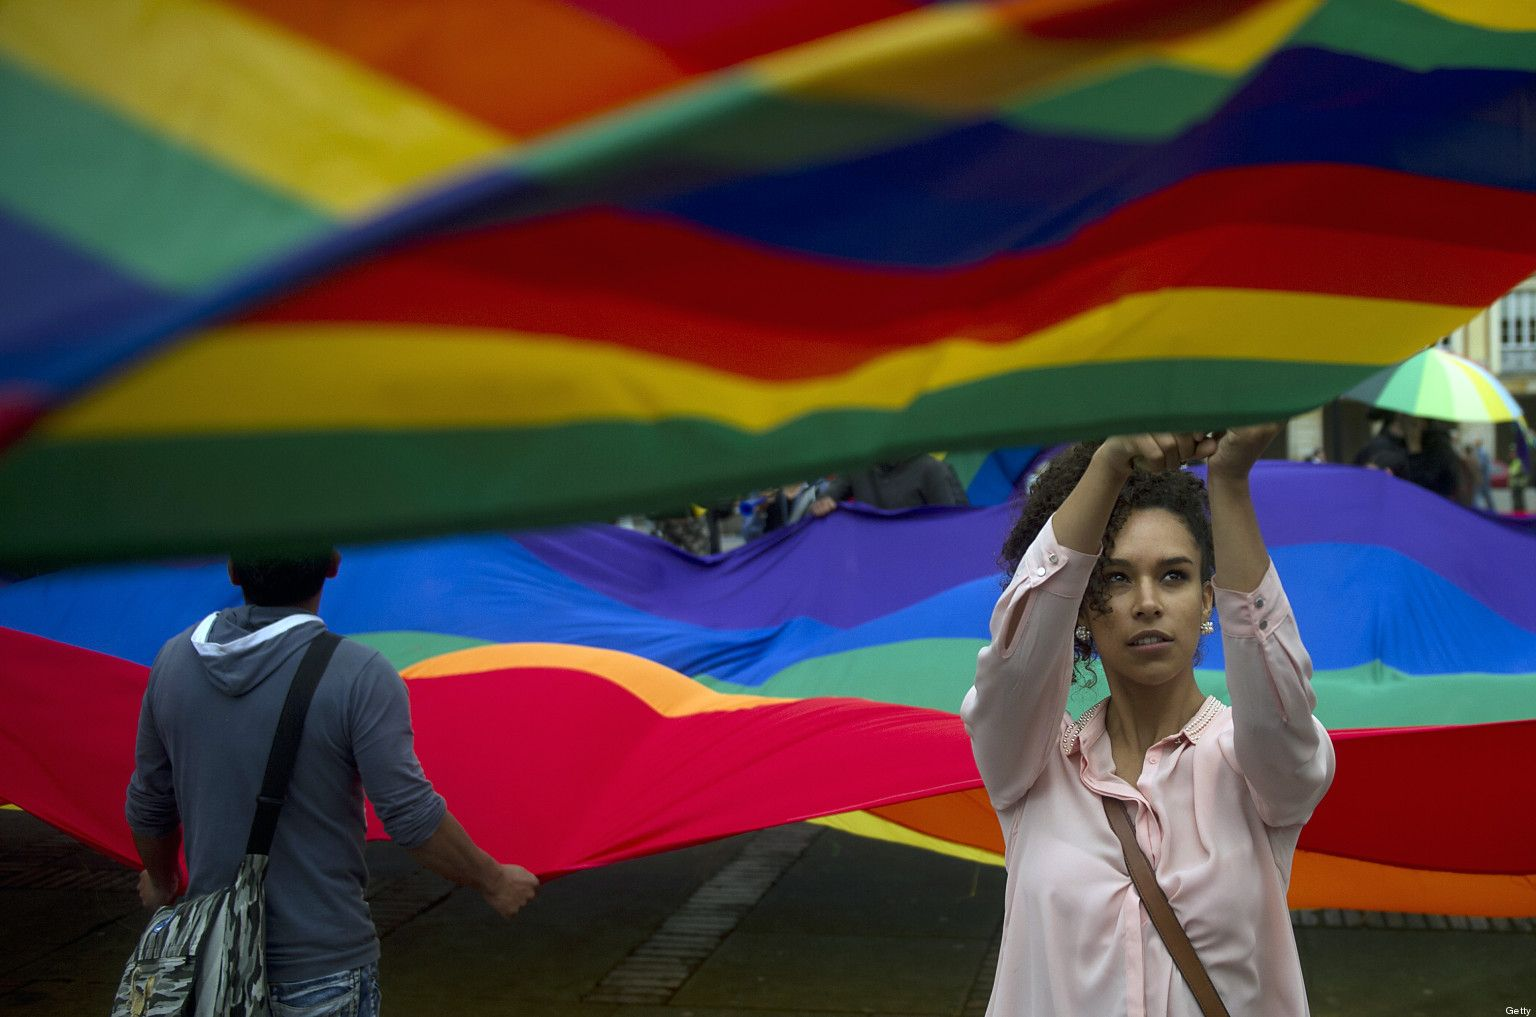 LGTB activists demonstrate outside the Colombian Congress in Bogota on April 23, 2013, at the time the Colombian Senate is to discuss the same-sex marriage bill. AFP PHOTO/Eitan Abramovich        (Photo credit should read EITAN ABRAMOVICH/AFP/Getty Images)